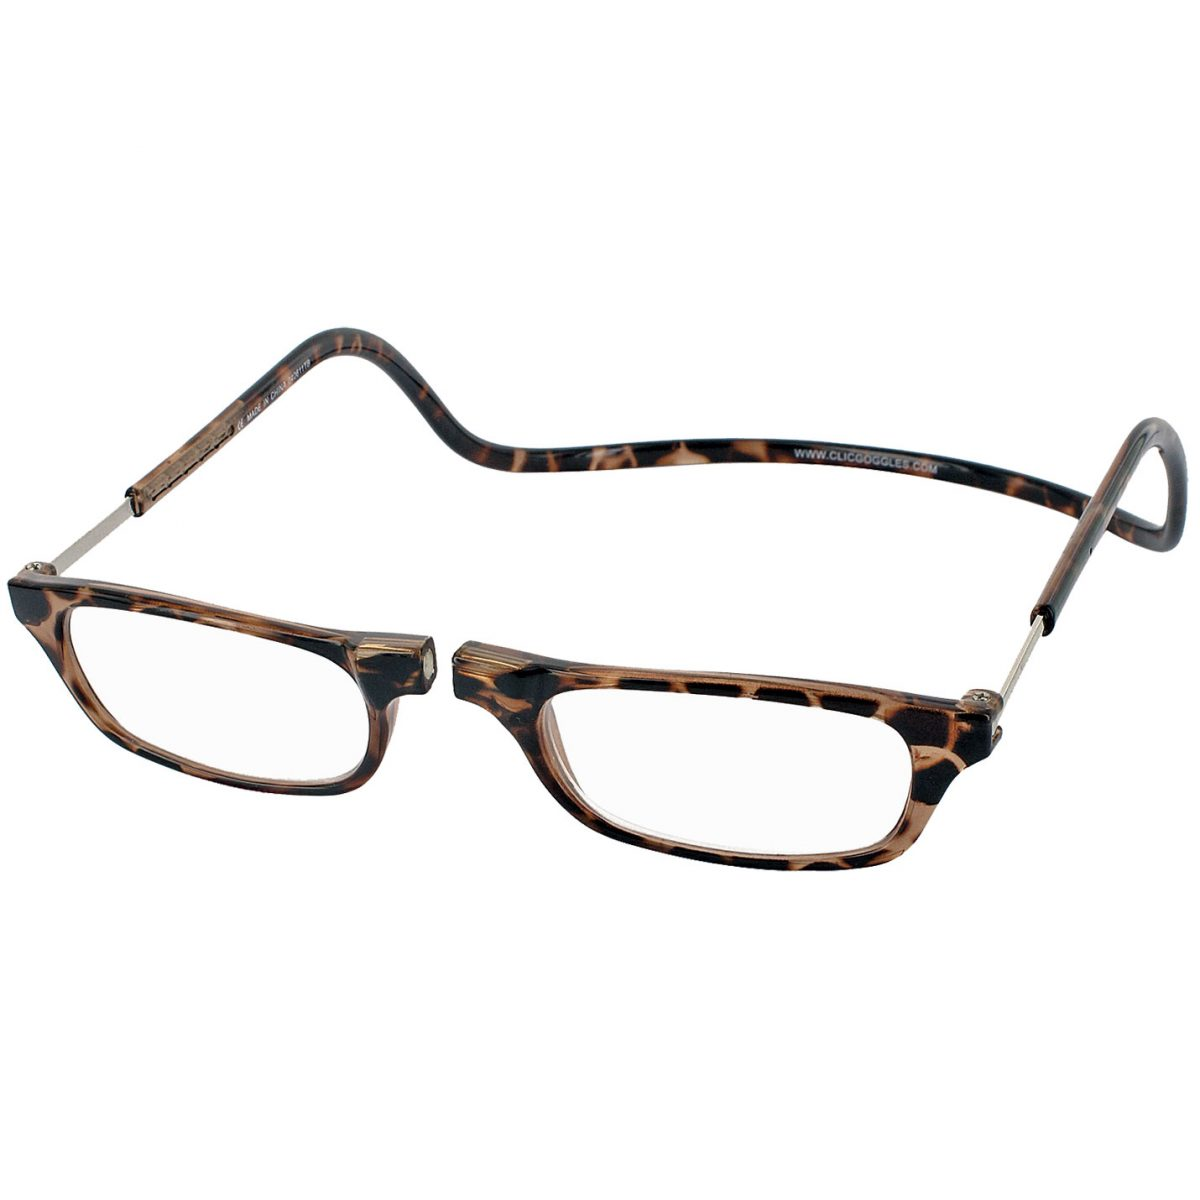 CLIC READERS ORIGINAL TORTOISE